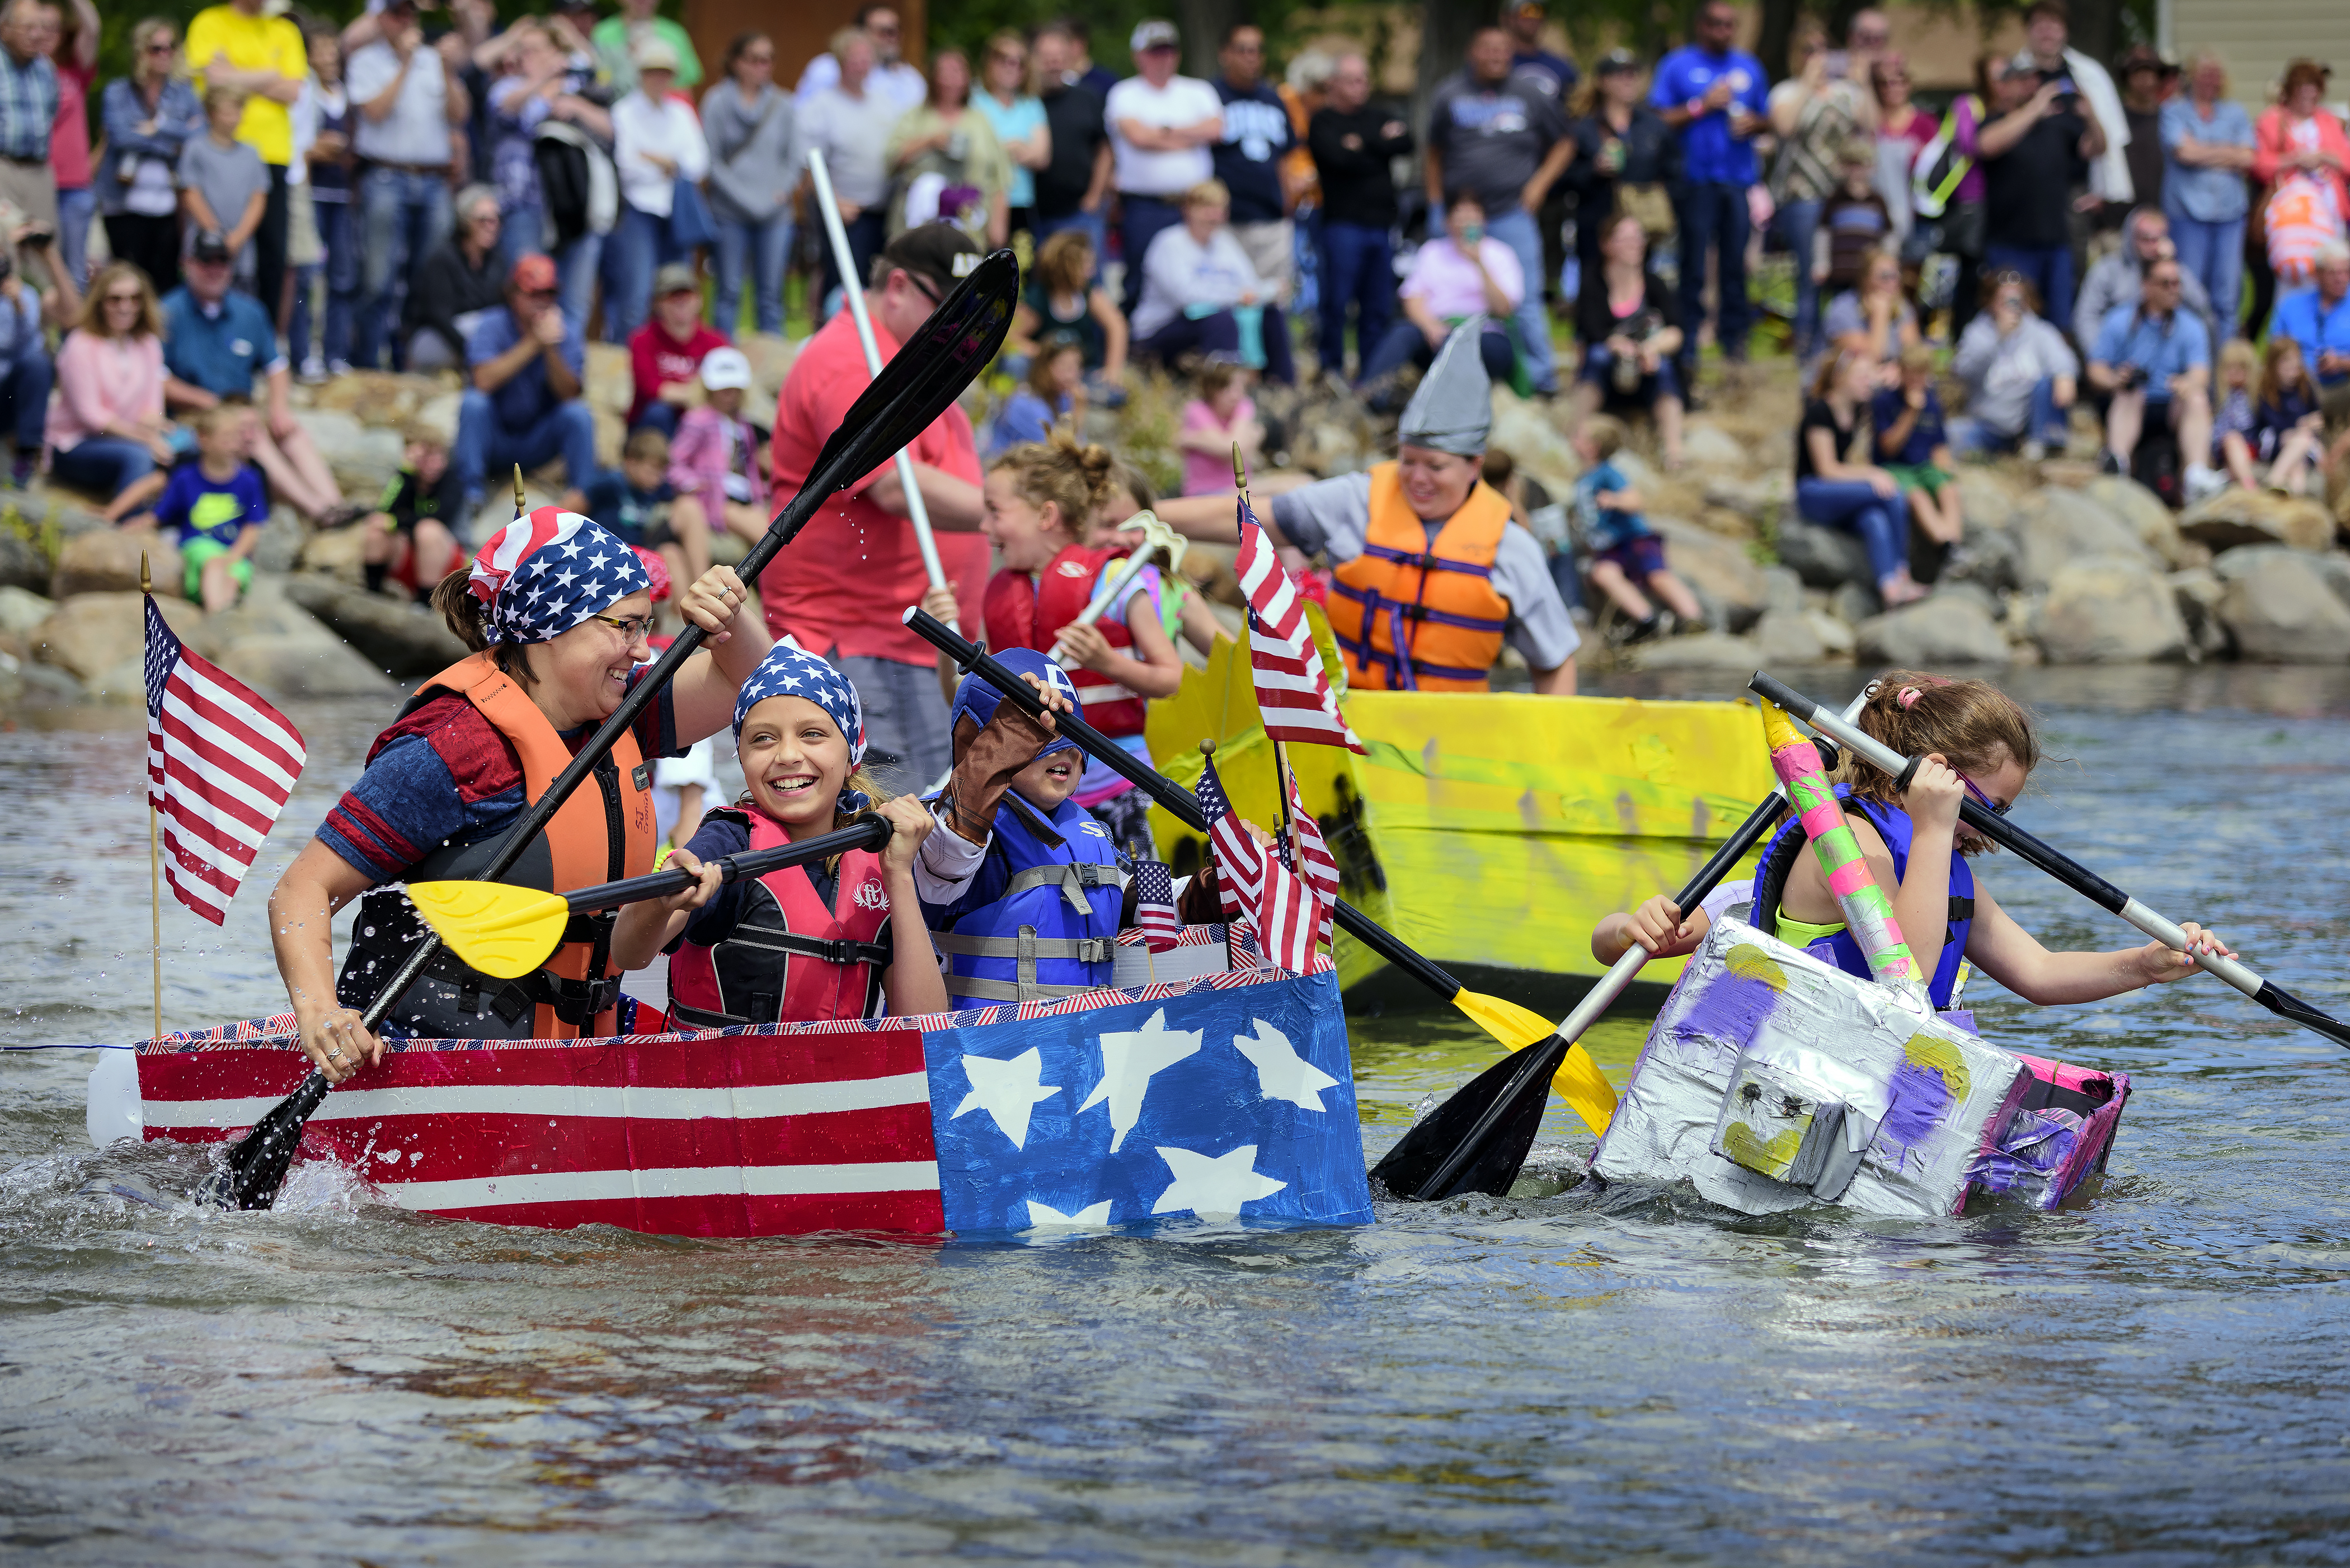 People rowing an American flag themed cardboard boat at Oahe Days in South Dakota